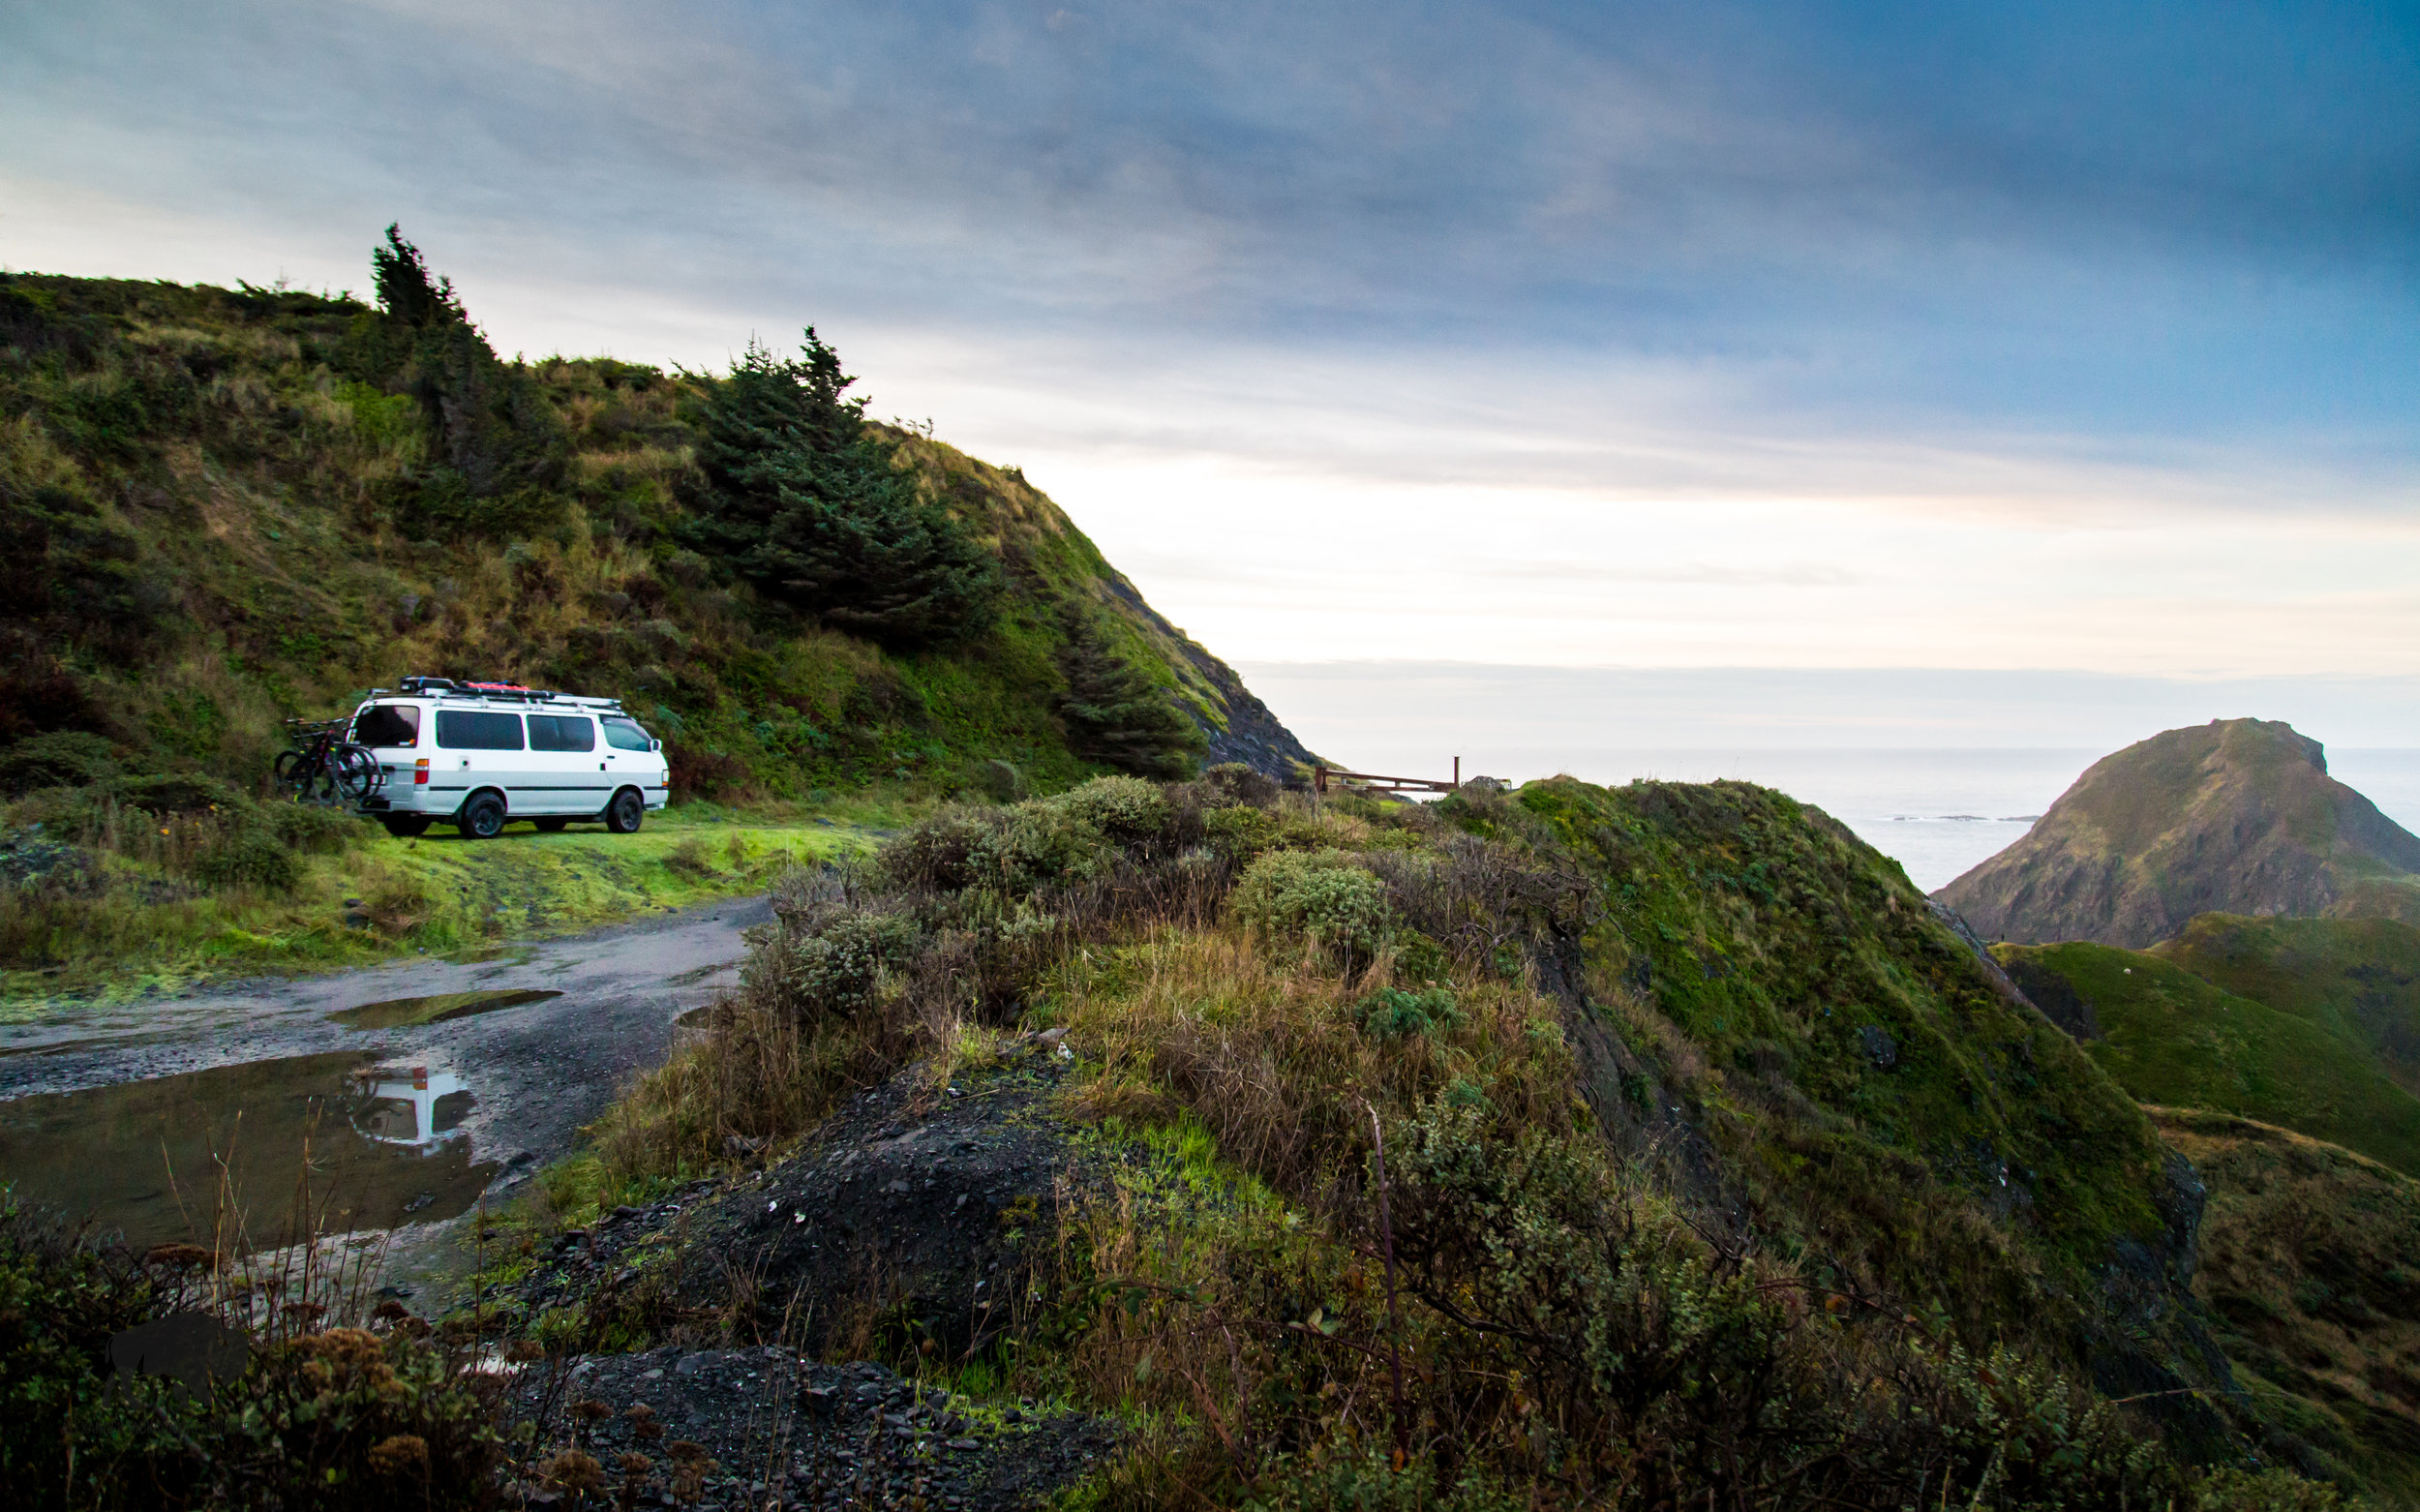 vanlife 1 (12 of 70).jpg